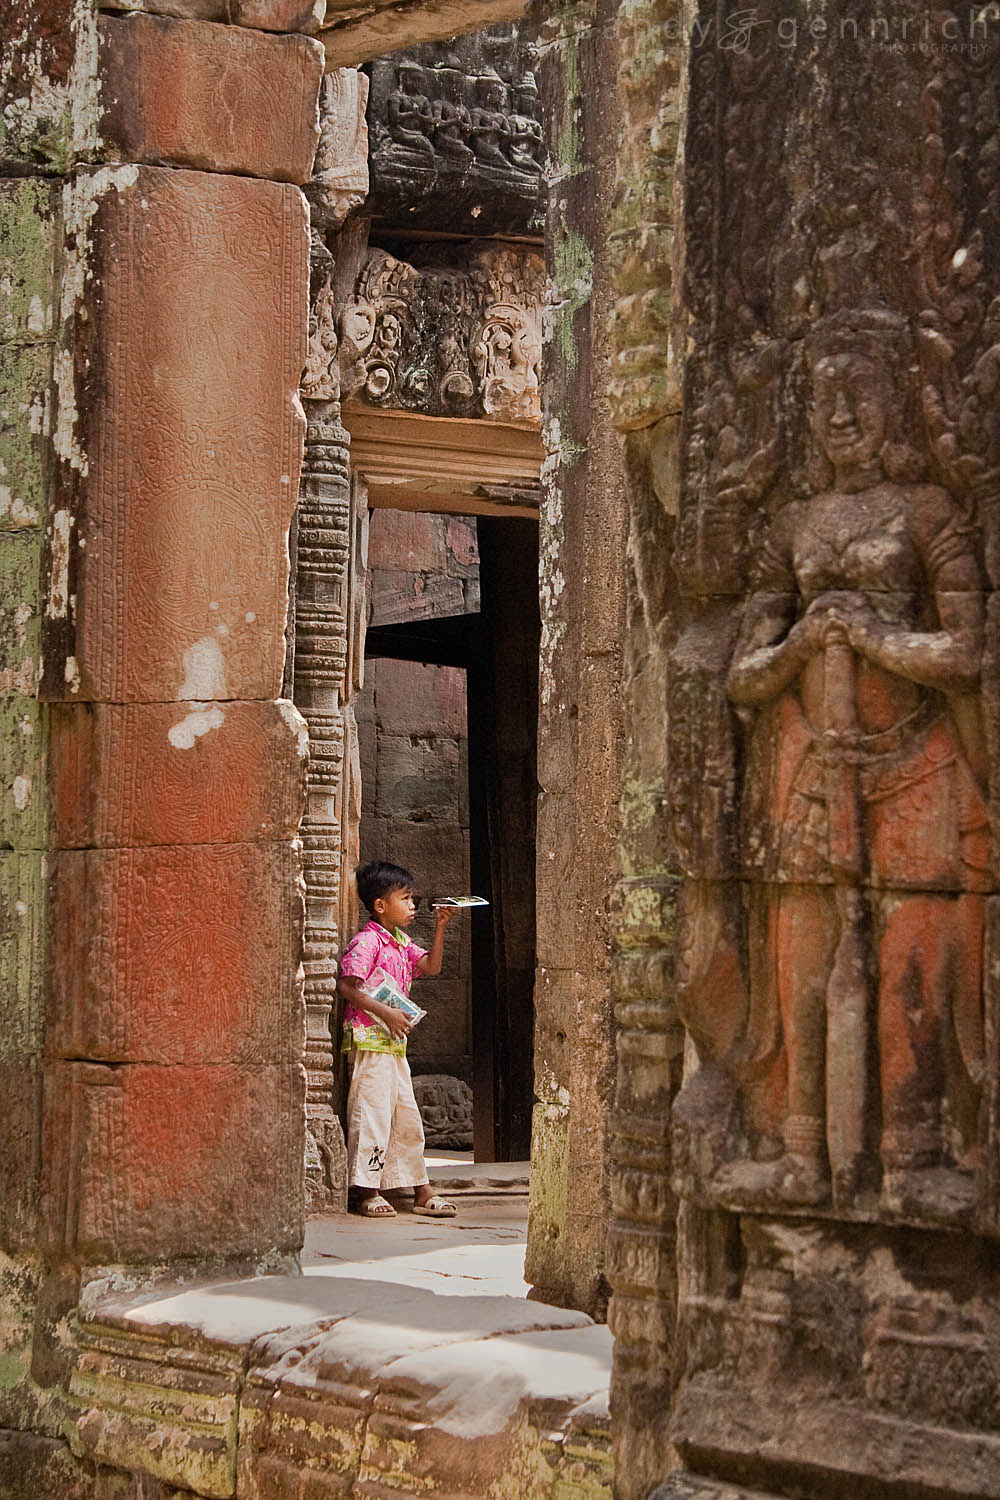 Making a Living - Banteay Kdei - Cambodia